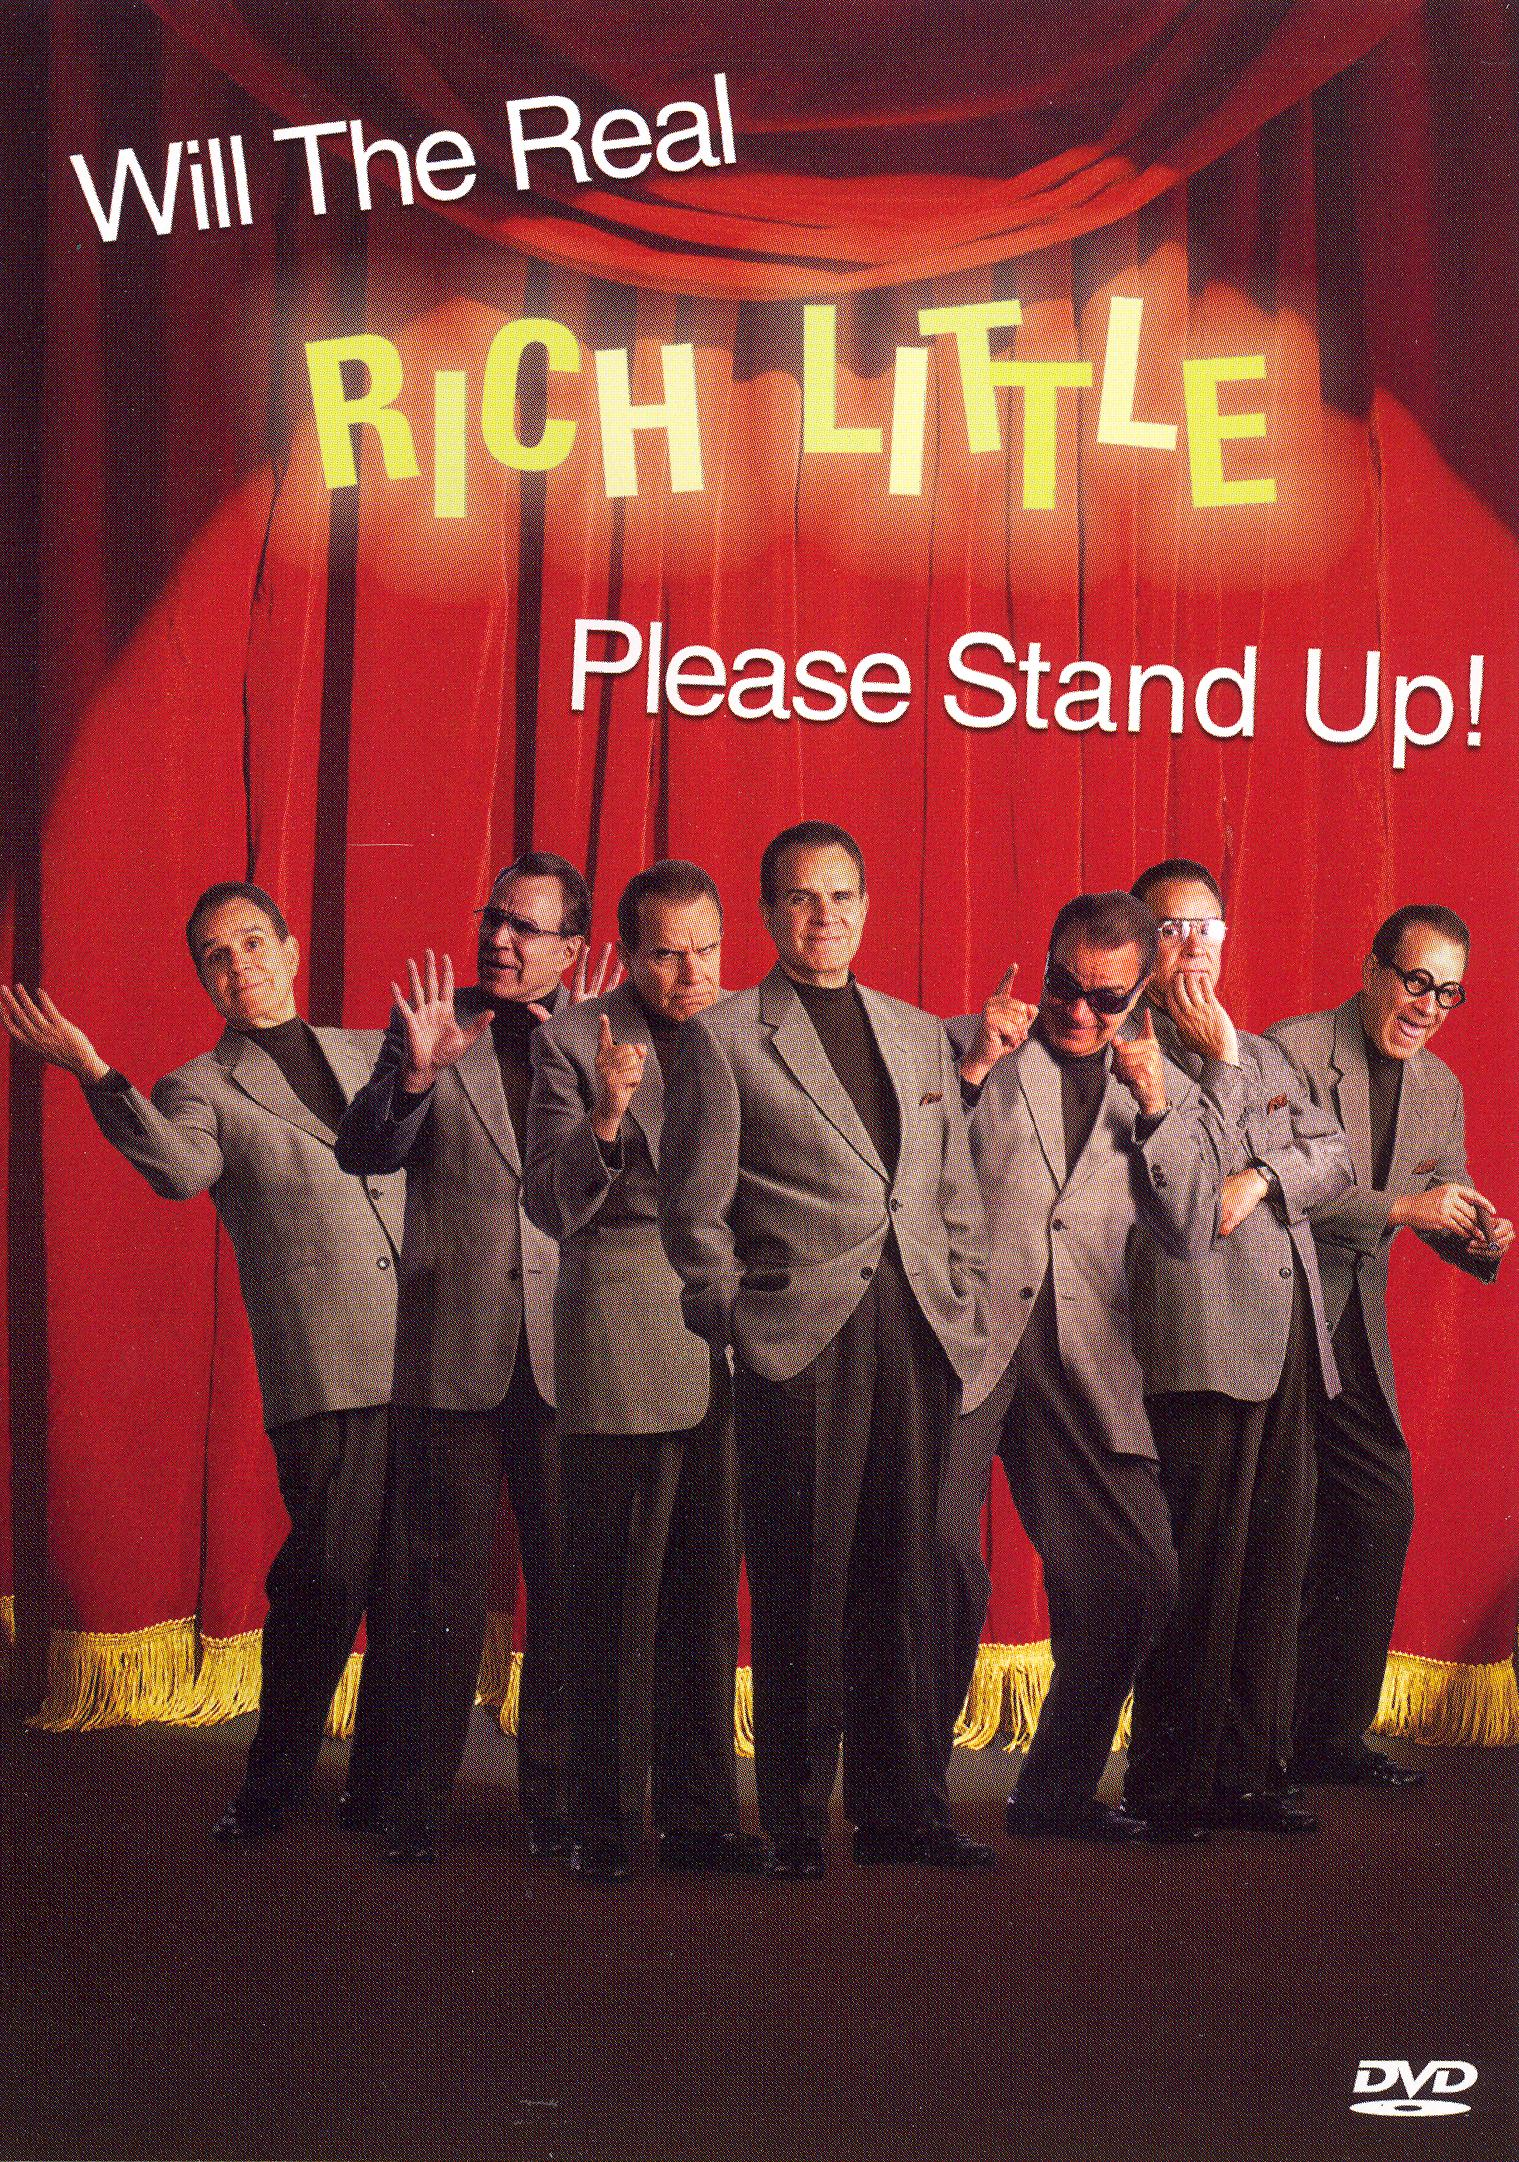 Rich Little: Will the Real Rich Little Please Stand Up